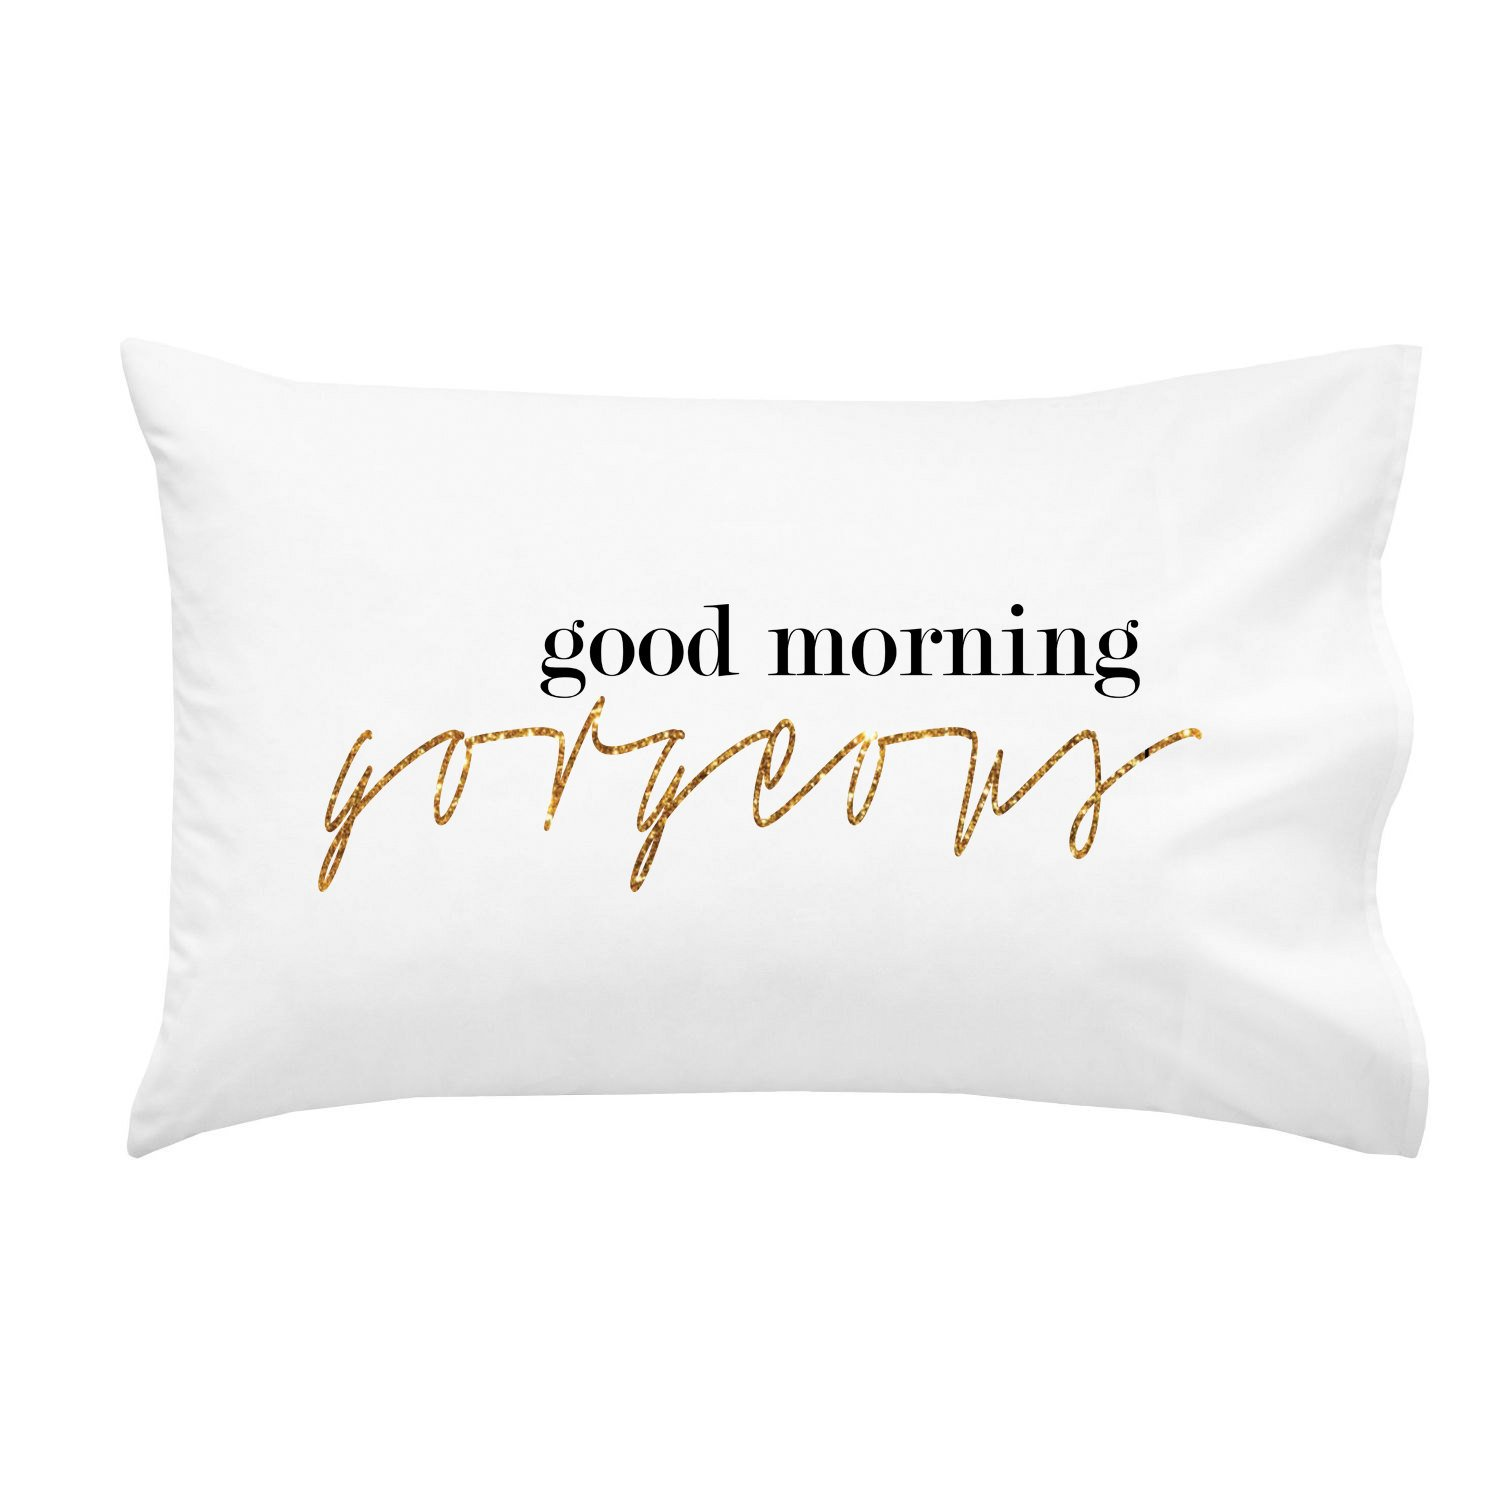 Oh, Susannah Good Morning Gorgeous Couples Pillow Case Wedding Anniversary Gift His and Her Gifts (1 Queen / Standard Pillowcase)